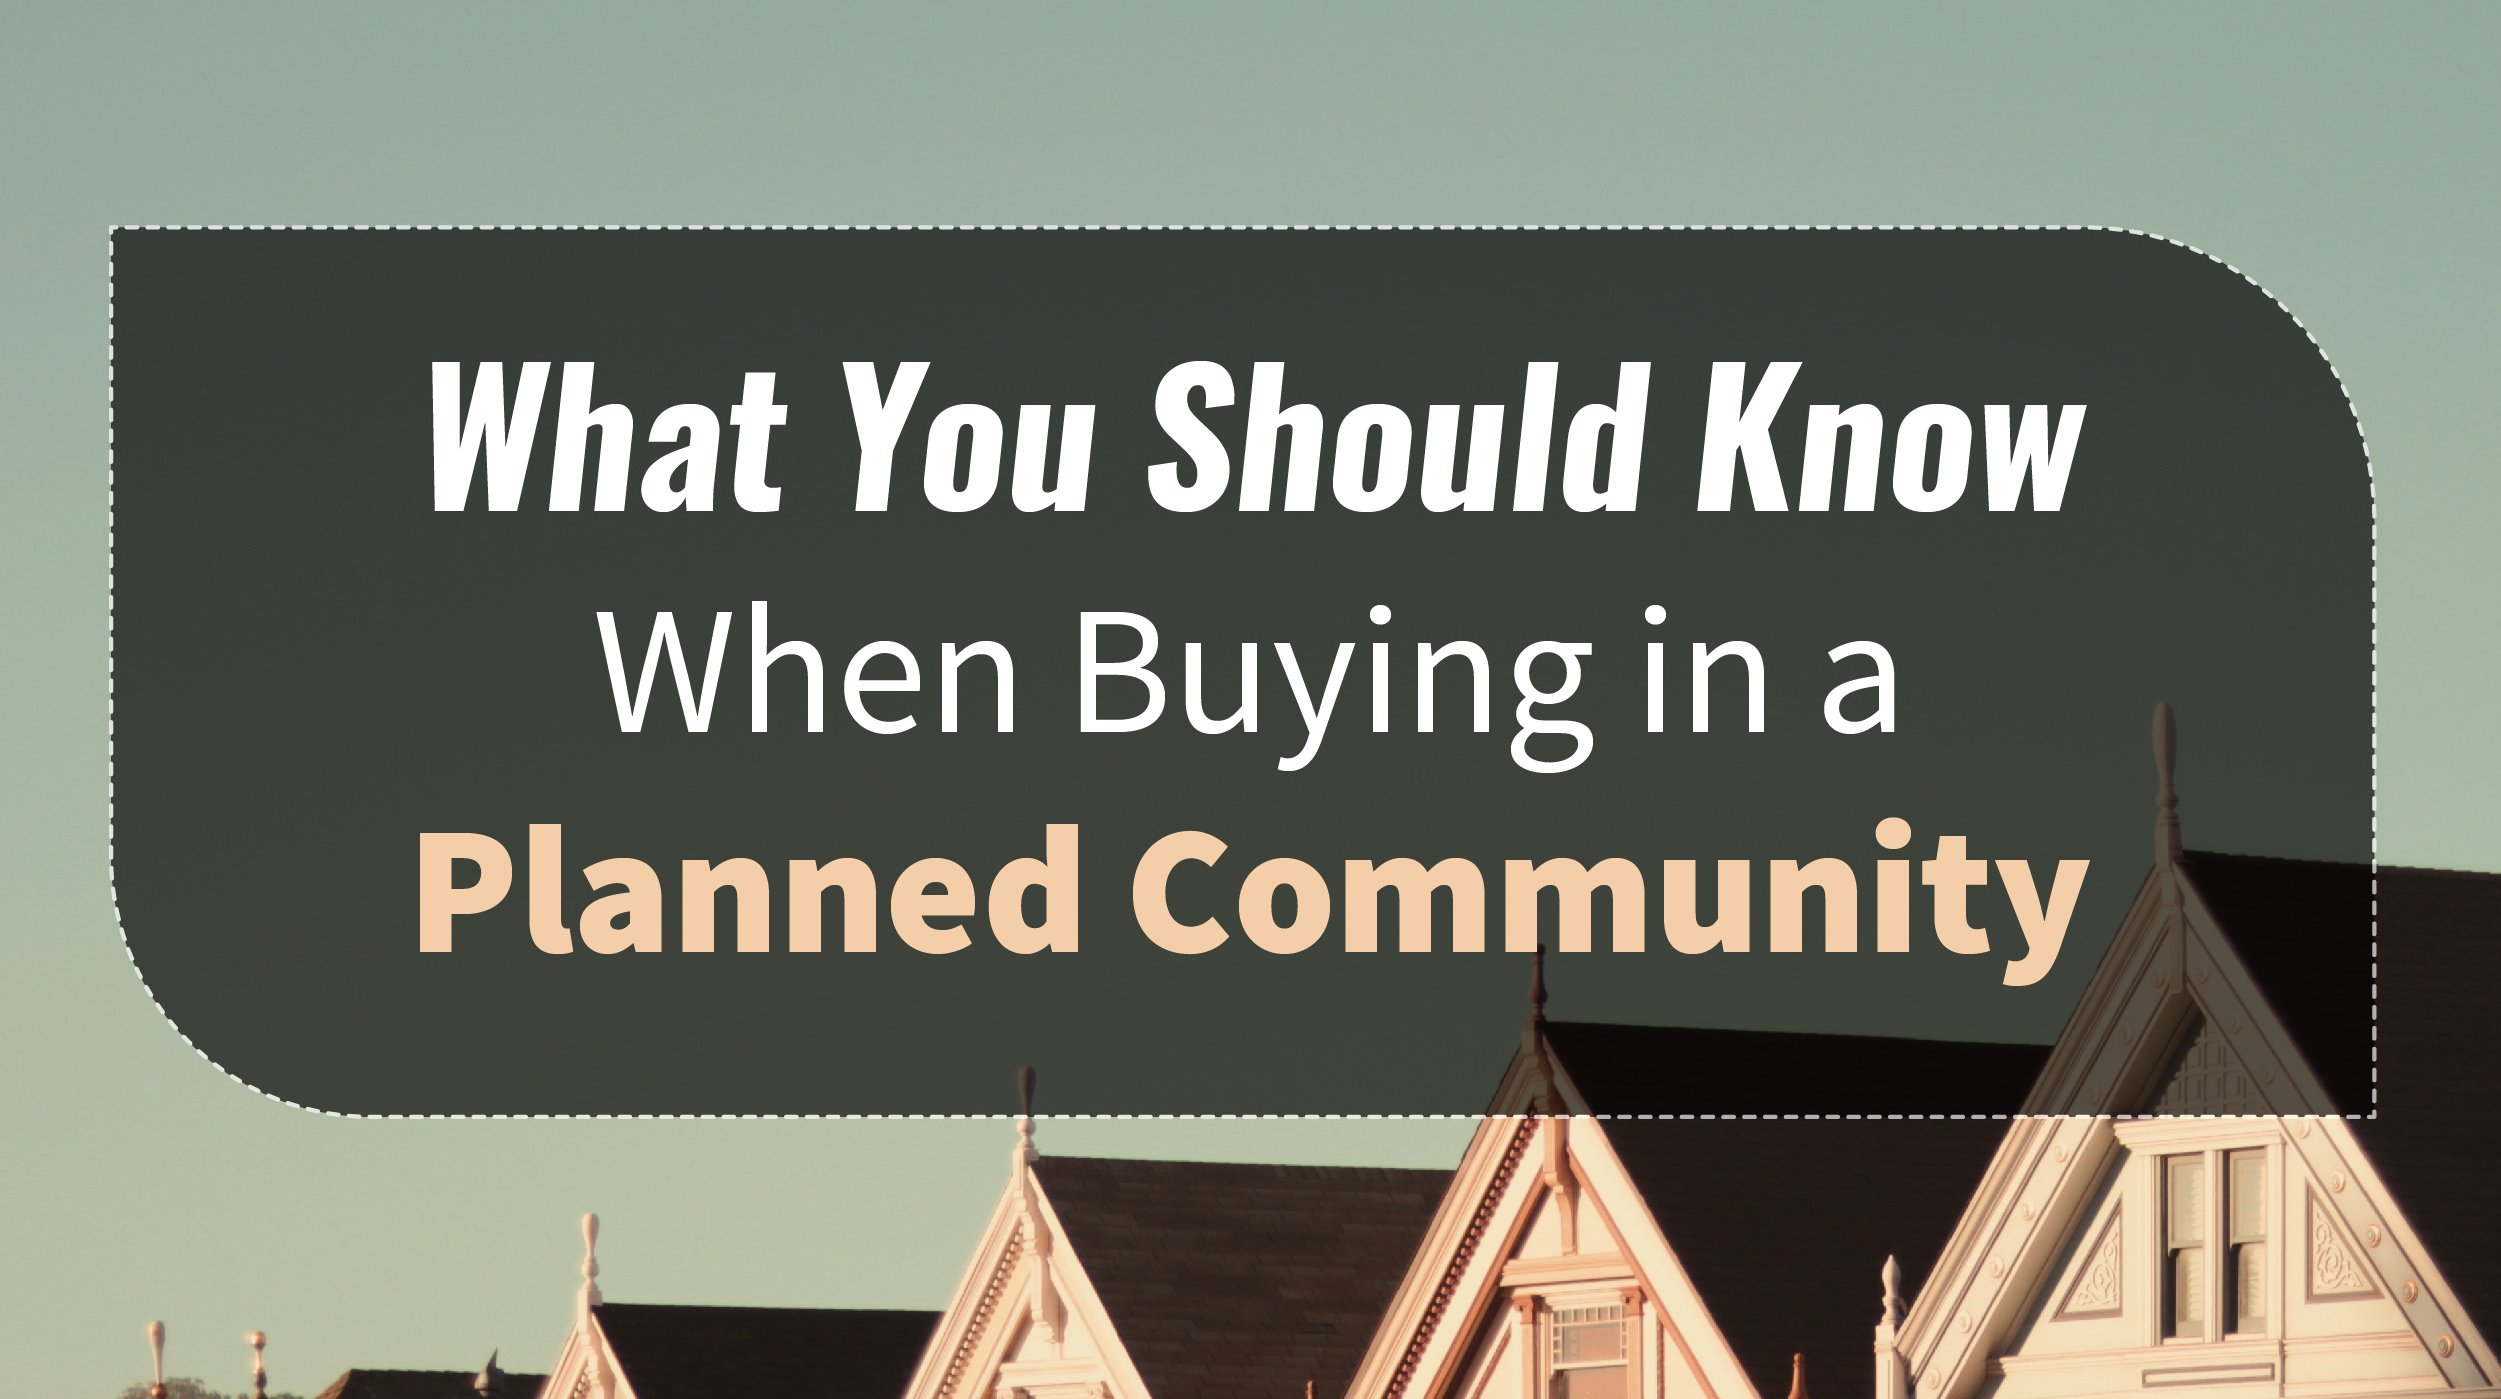 What You Should Know When Buying in a Planned Community